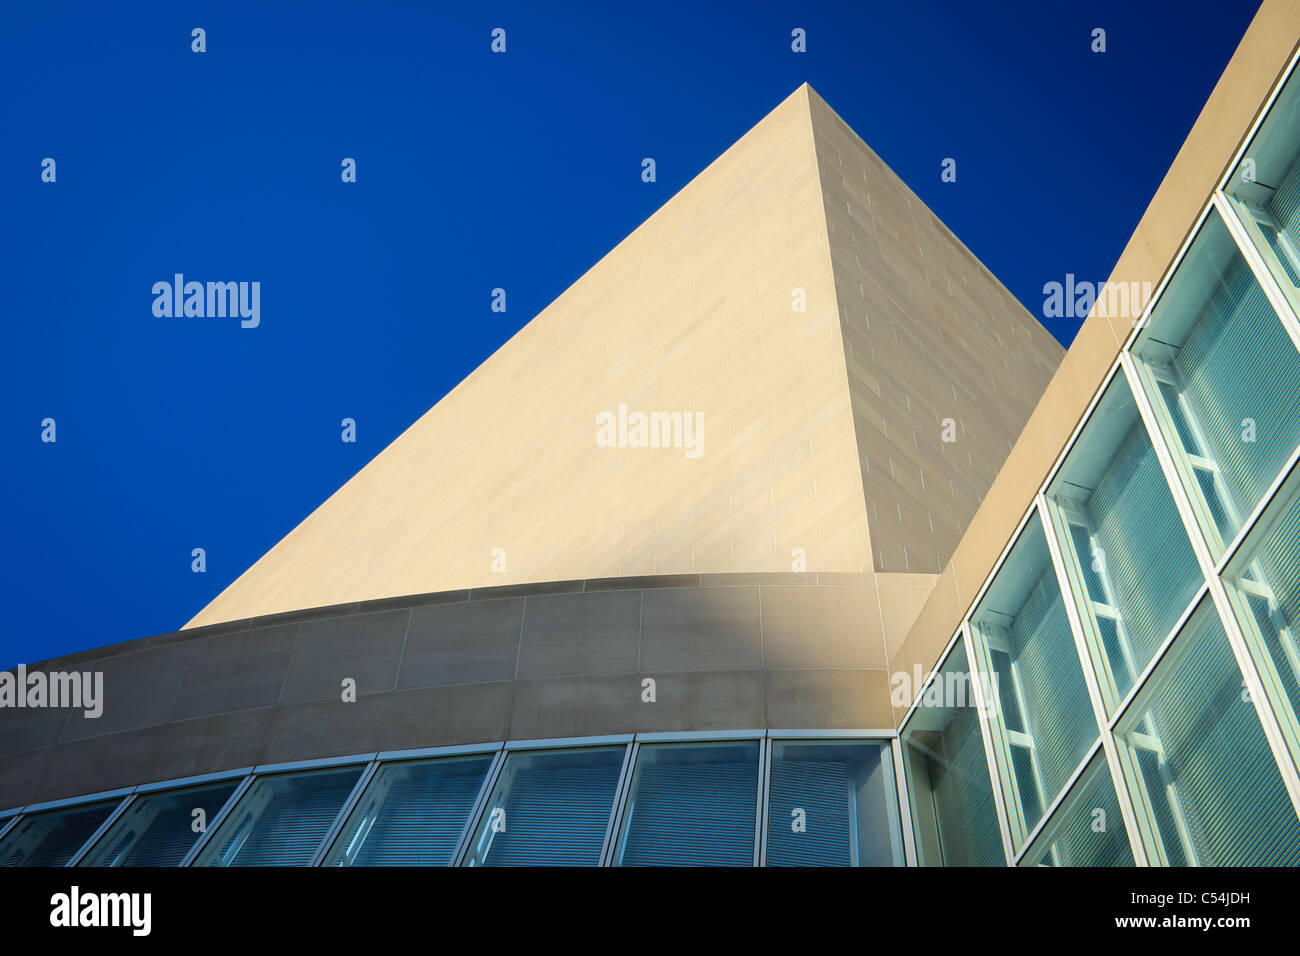 The Meyerson Symphony center  in Dallas with it's sharp angles and shot against a deep blue sky. - Stock Image